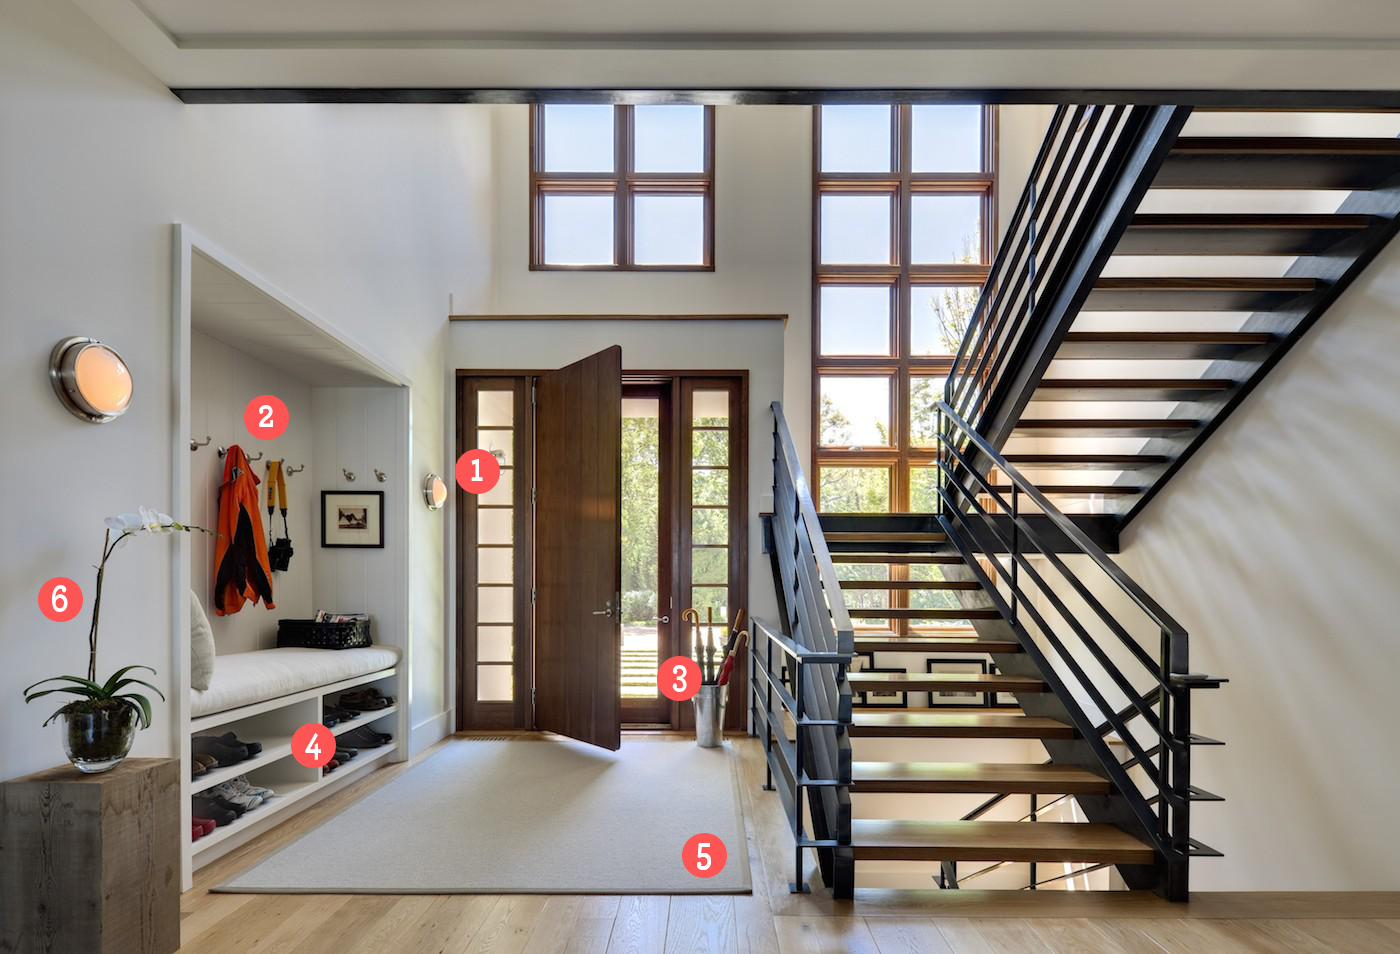 6 ways to design an entryway that works - porch advice